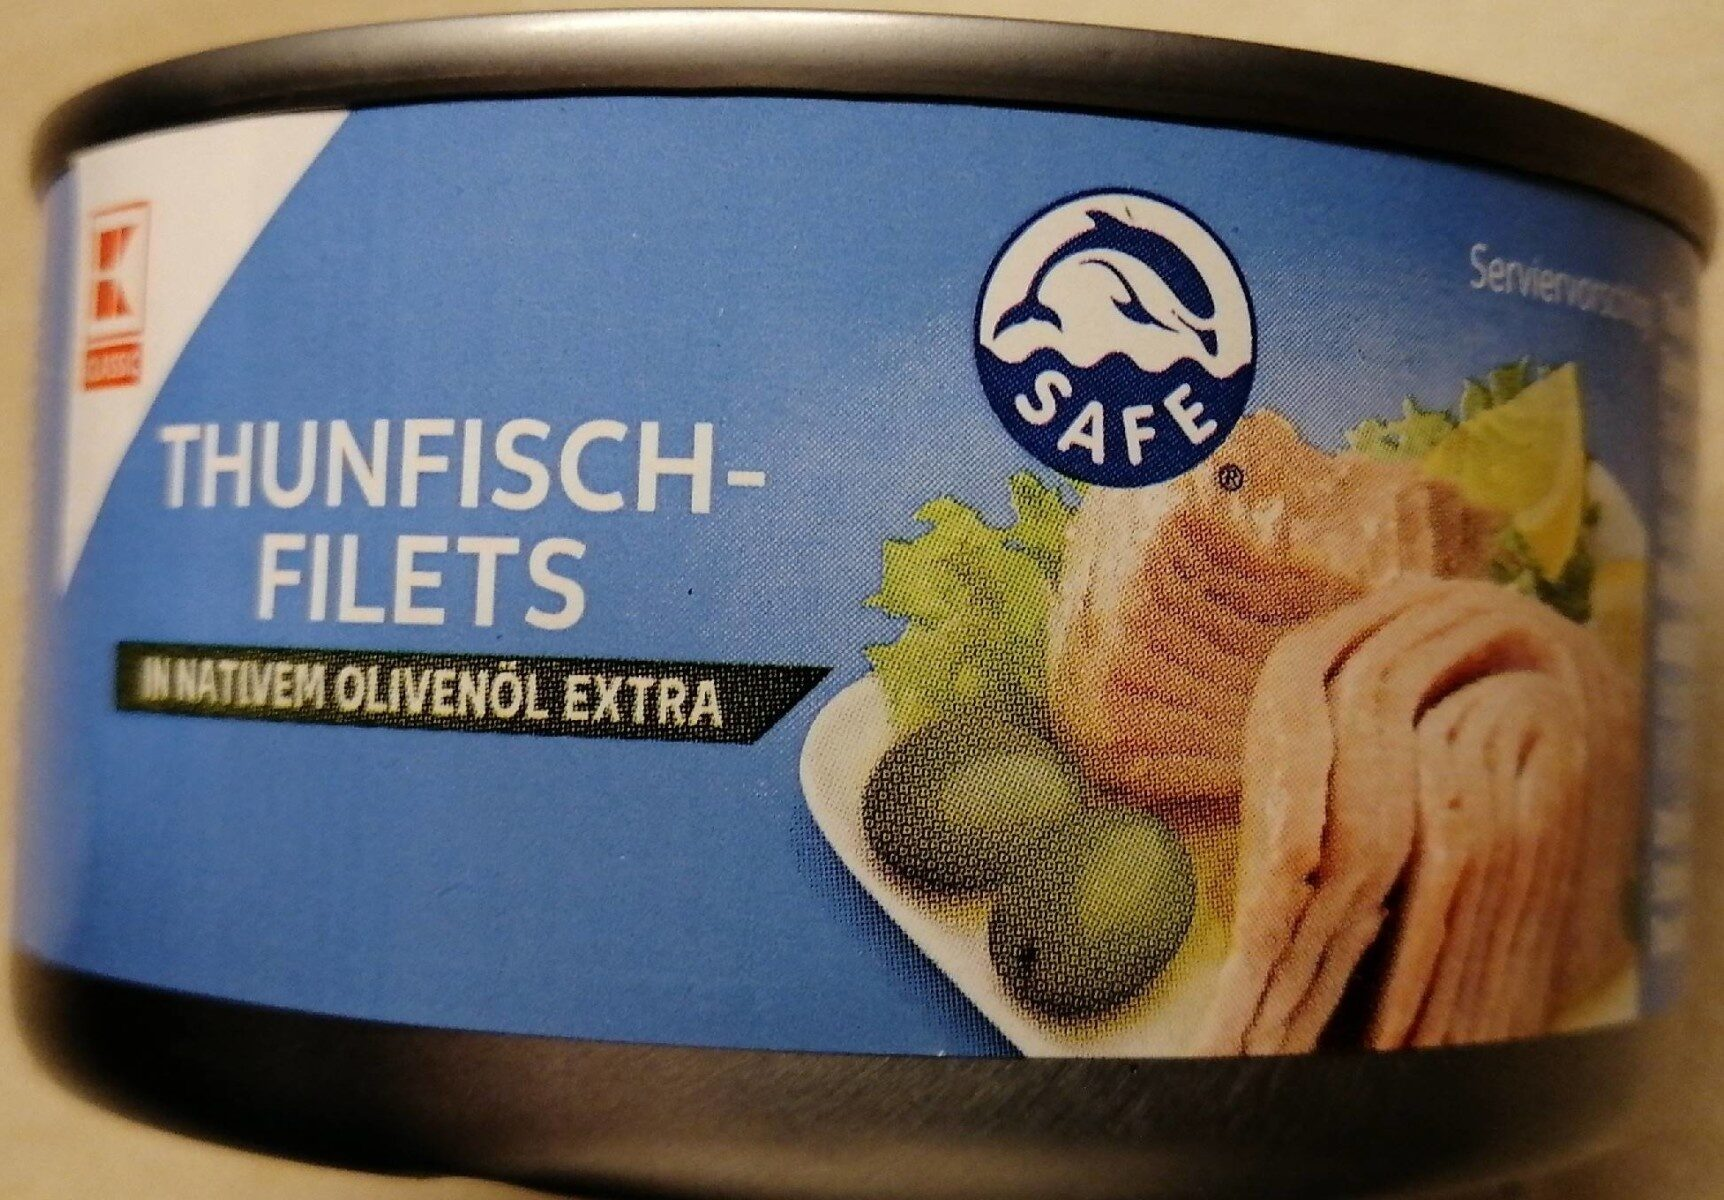 Thunfisch Filets in nativen Olivenöl extra - Product - de